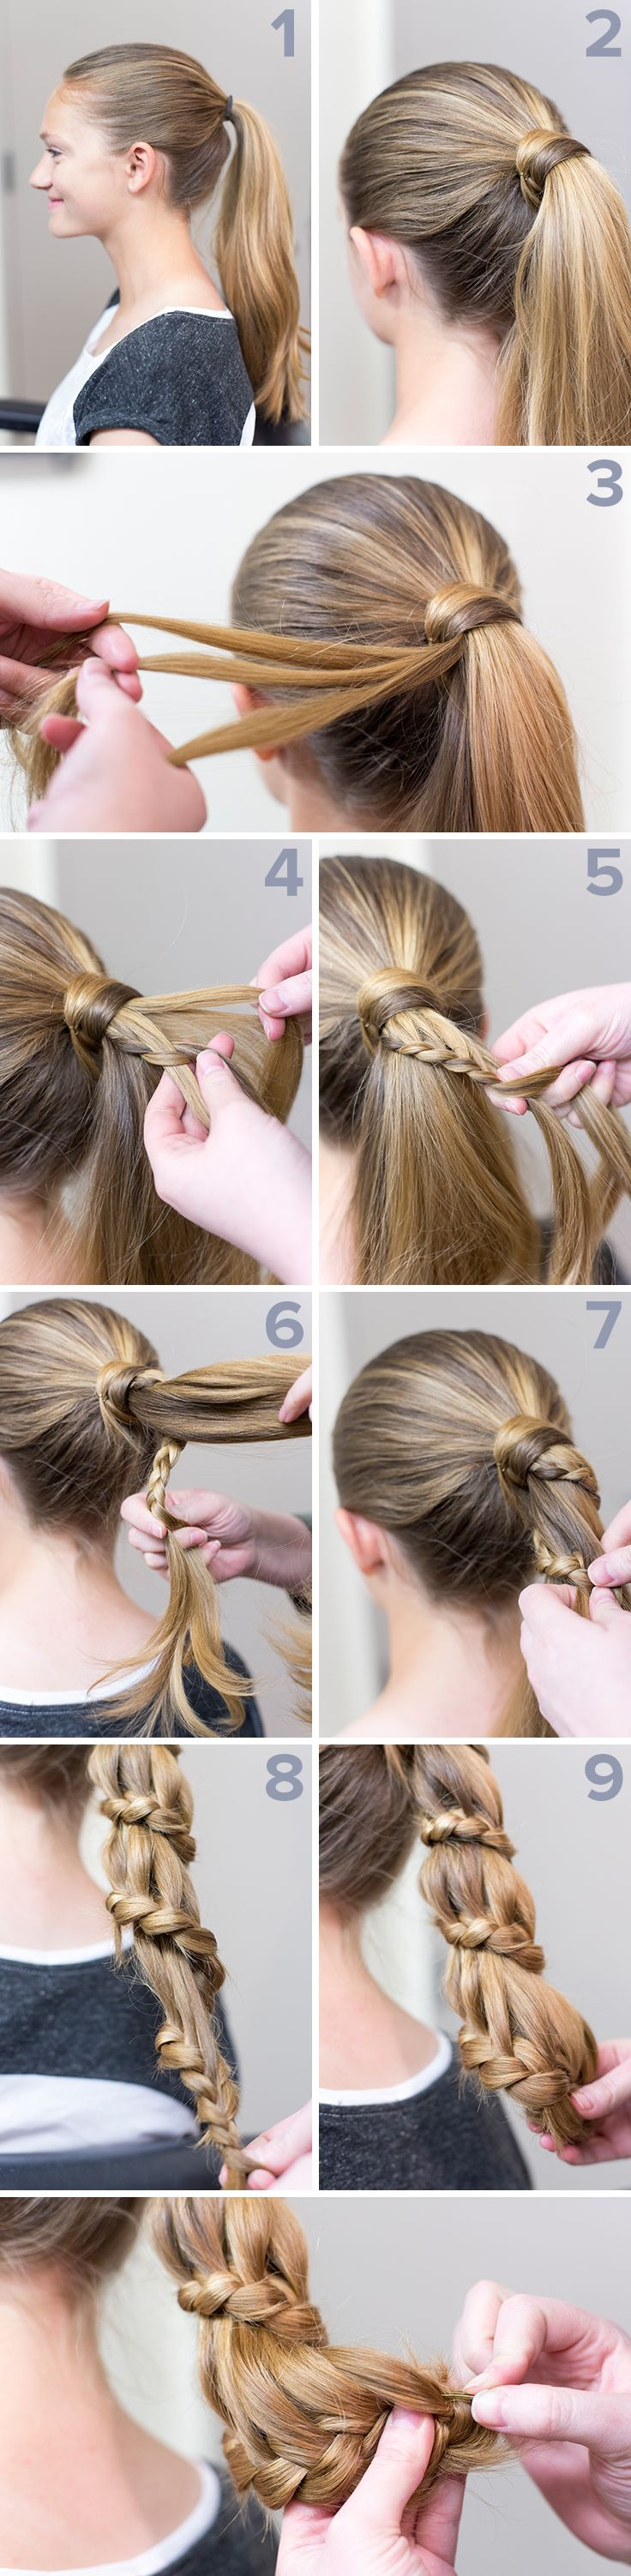 ultimate guide to braids for every event and occasion